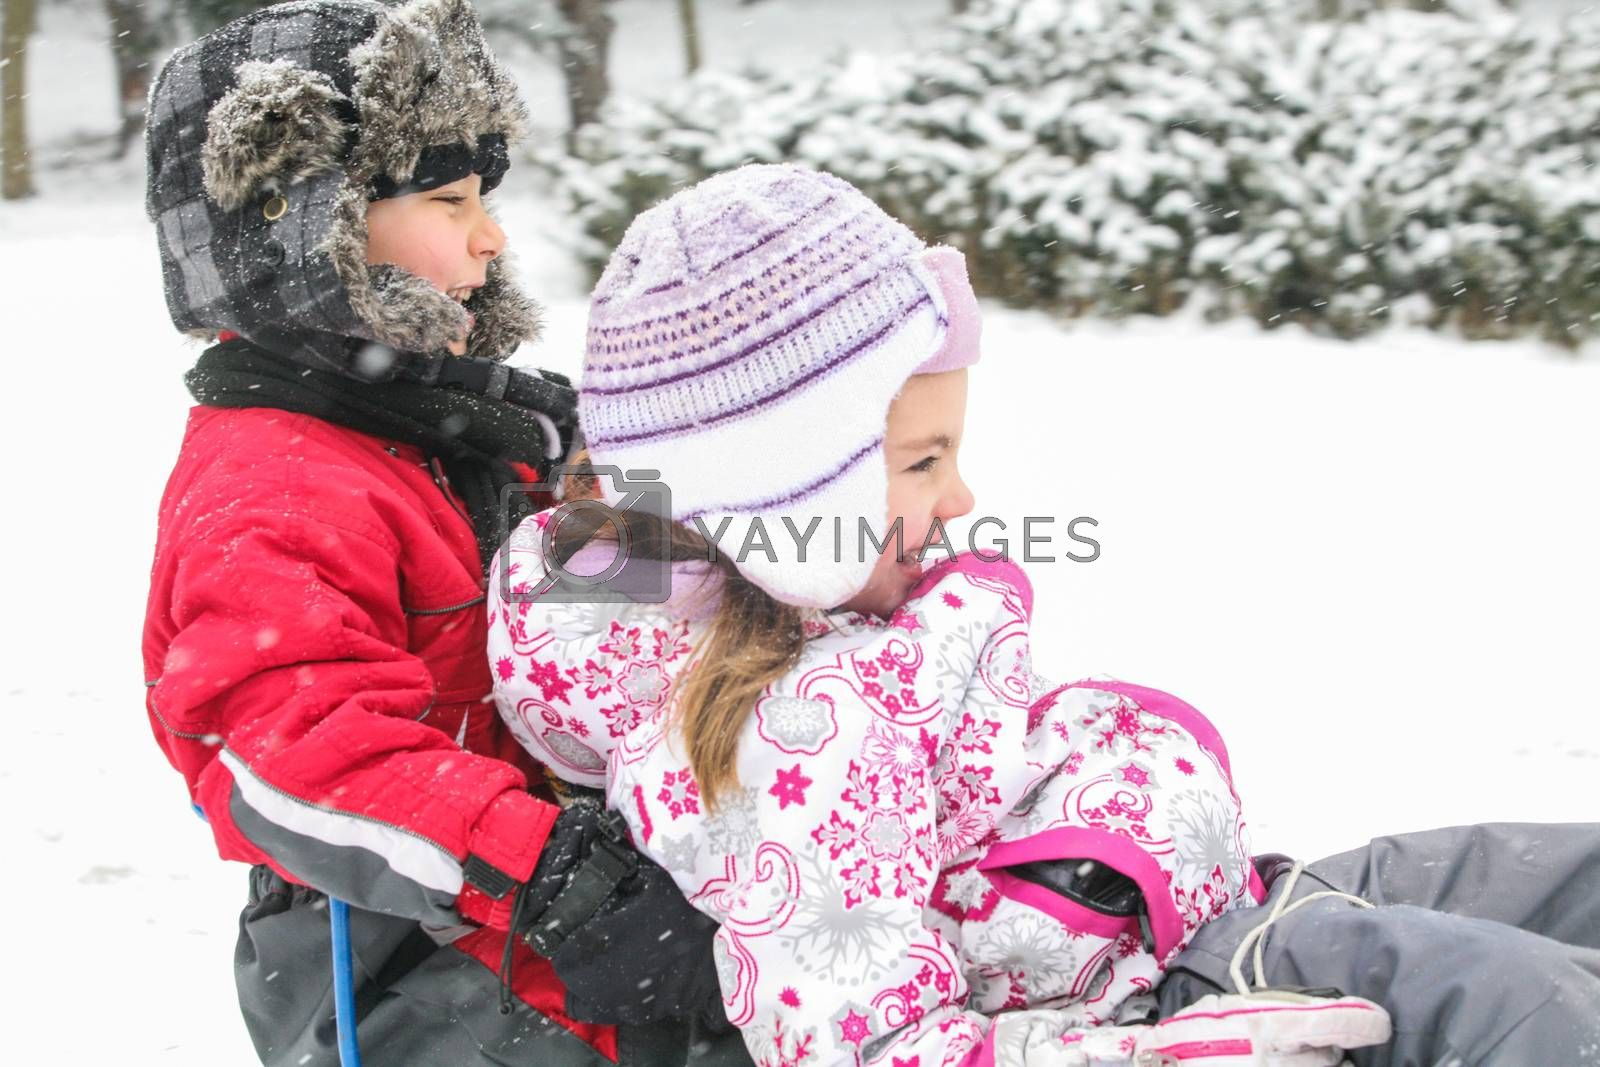 Two kids are playing in the snow on a cold winter day.